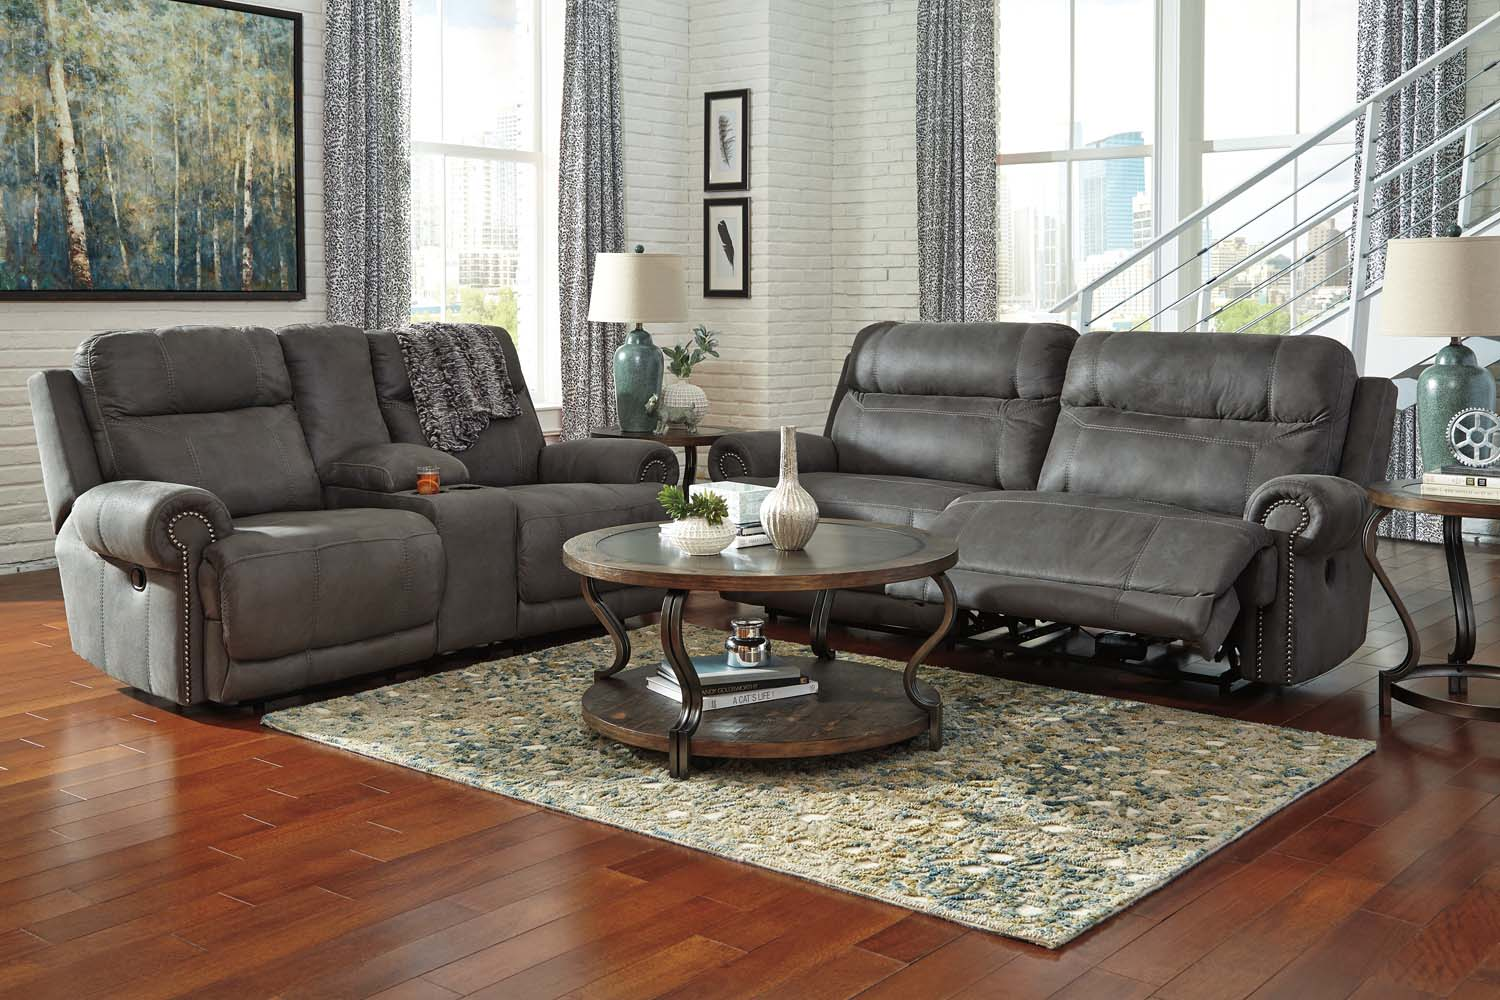 38401U2 Austere Gray 6 Piece Living Room Set by Ashley Furniture